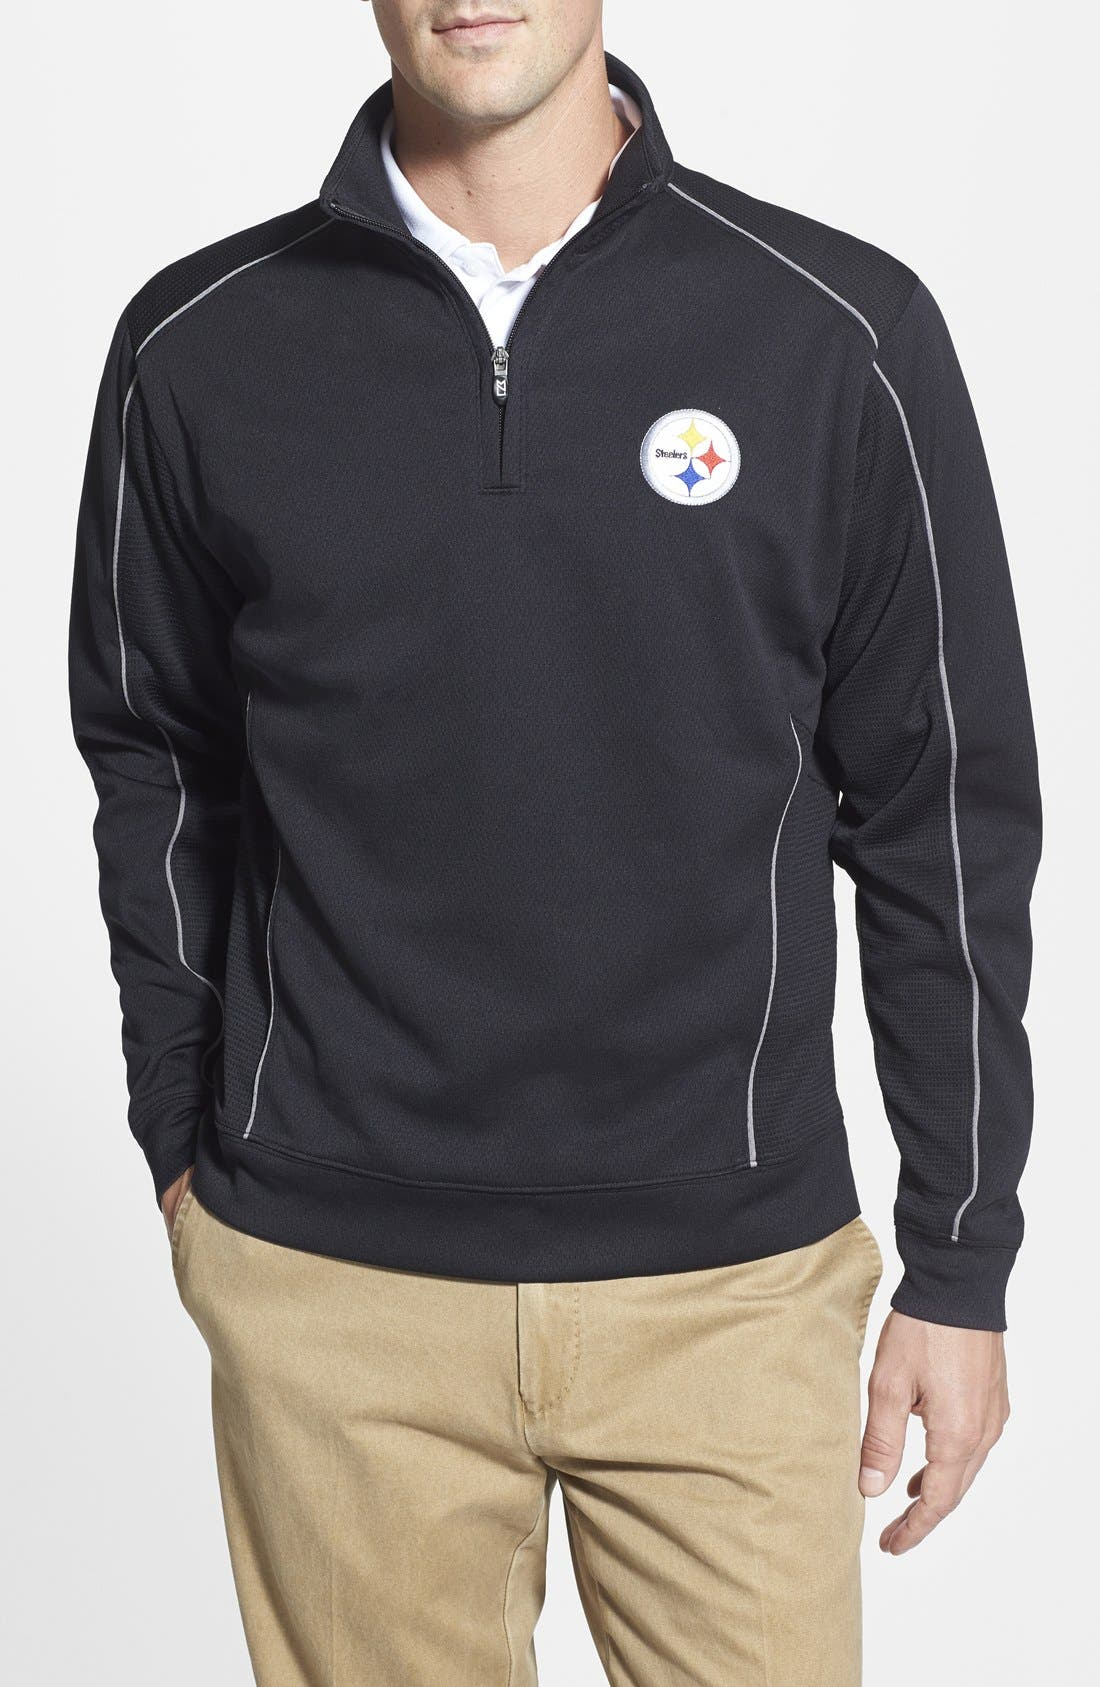 'Pittsburgh Steelers - Edge' DryTec Moisture Wicking Half Zip Pullover,                         Main,                         color, 001